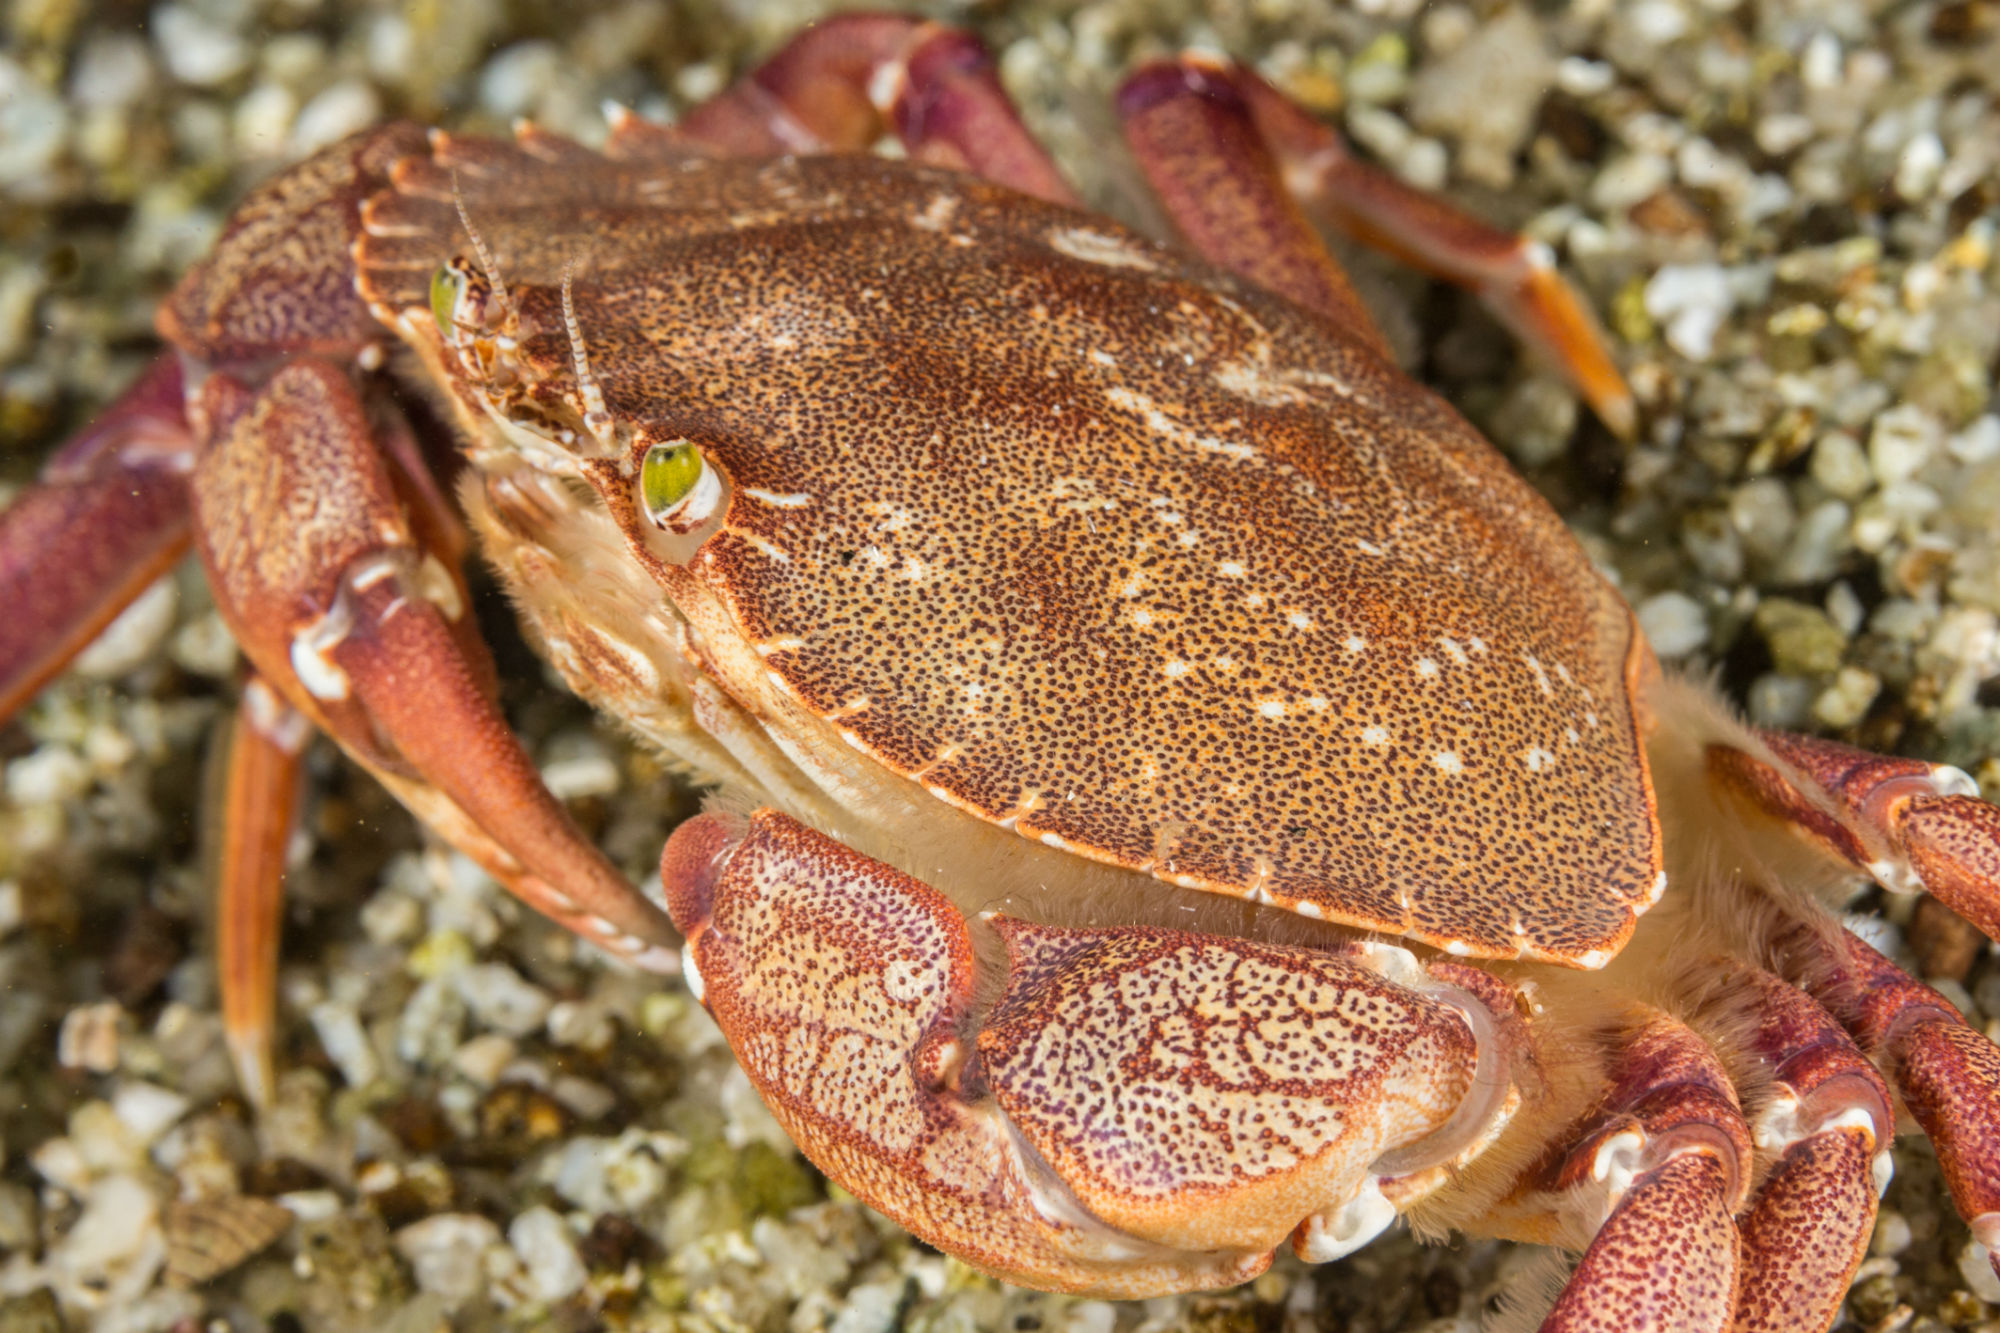 A Rock Crab in the Sandy Bottom of the Drift Dive on Deer Island